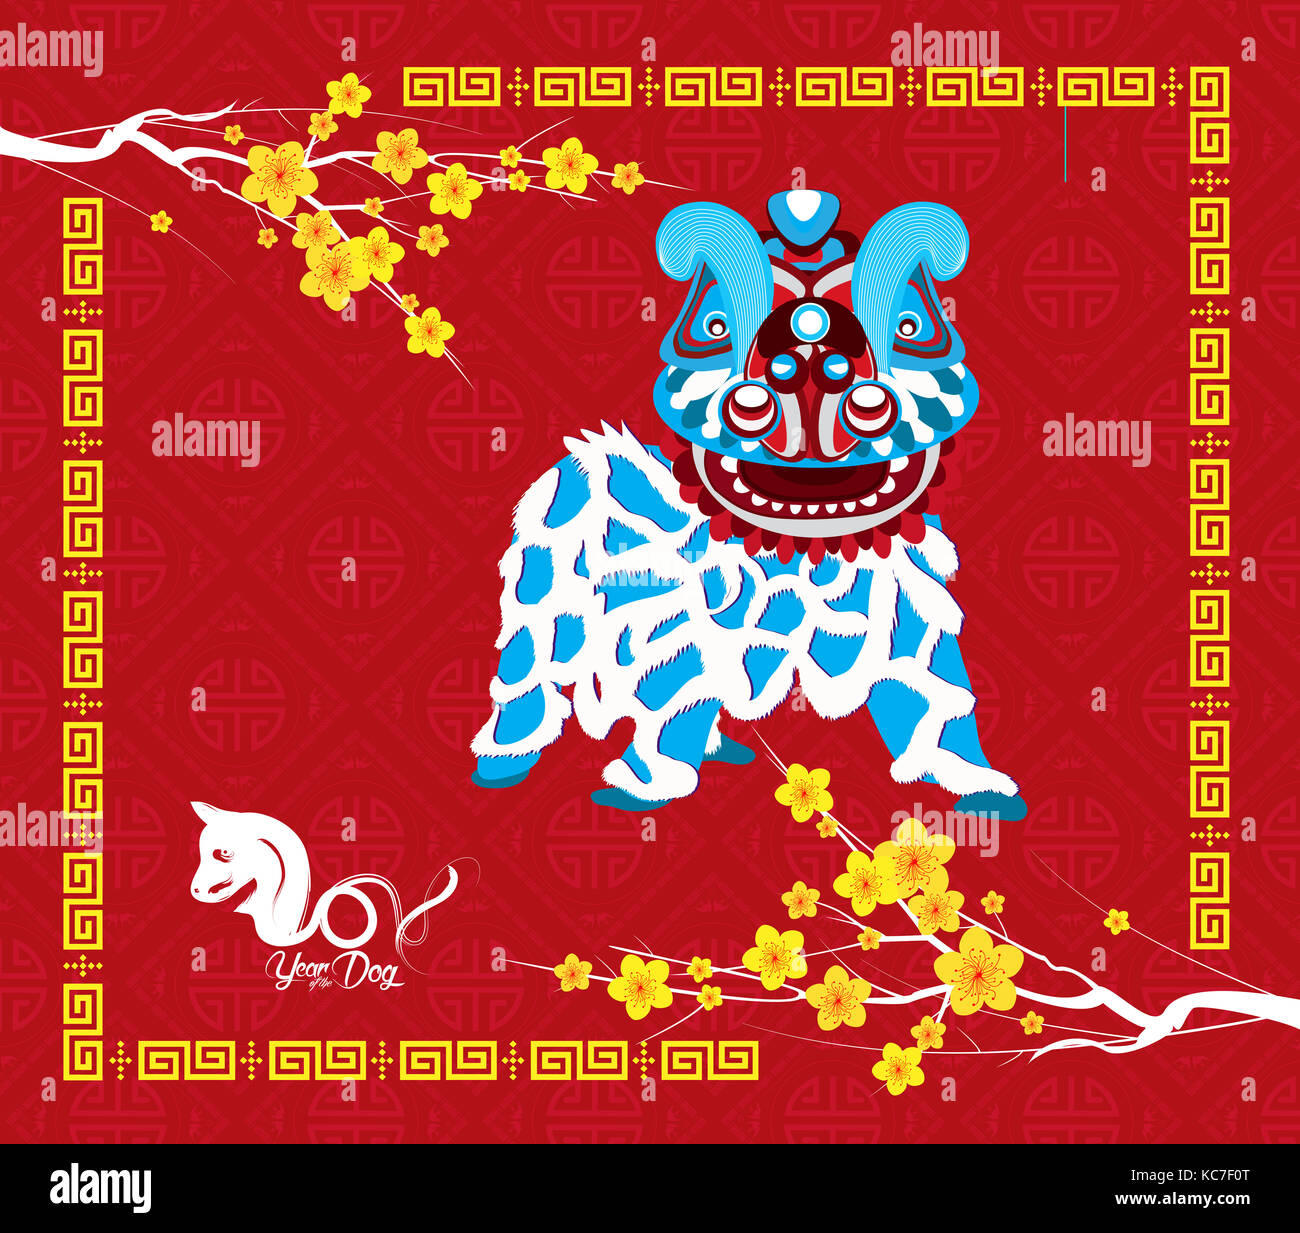 chinese new year 2018 year of the dog background with lion dance